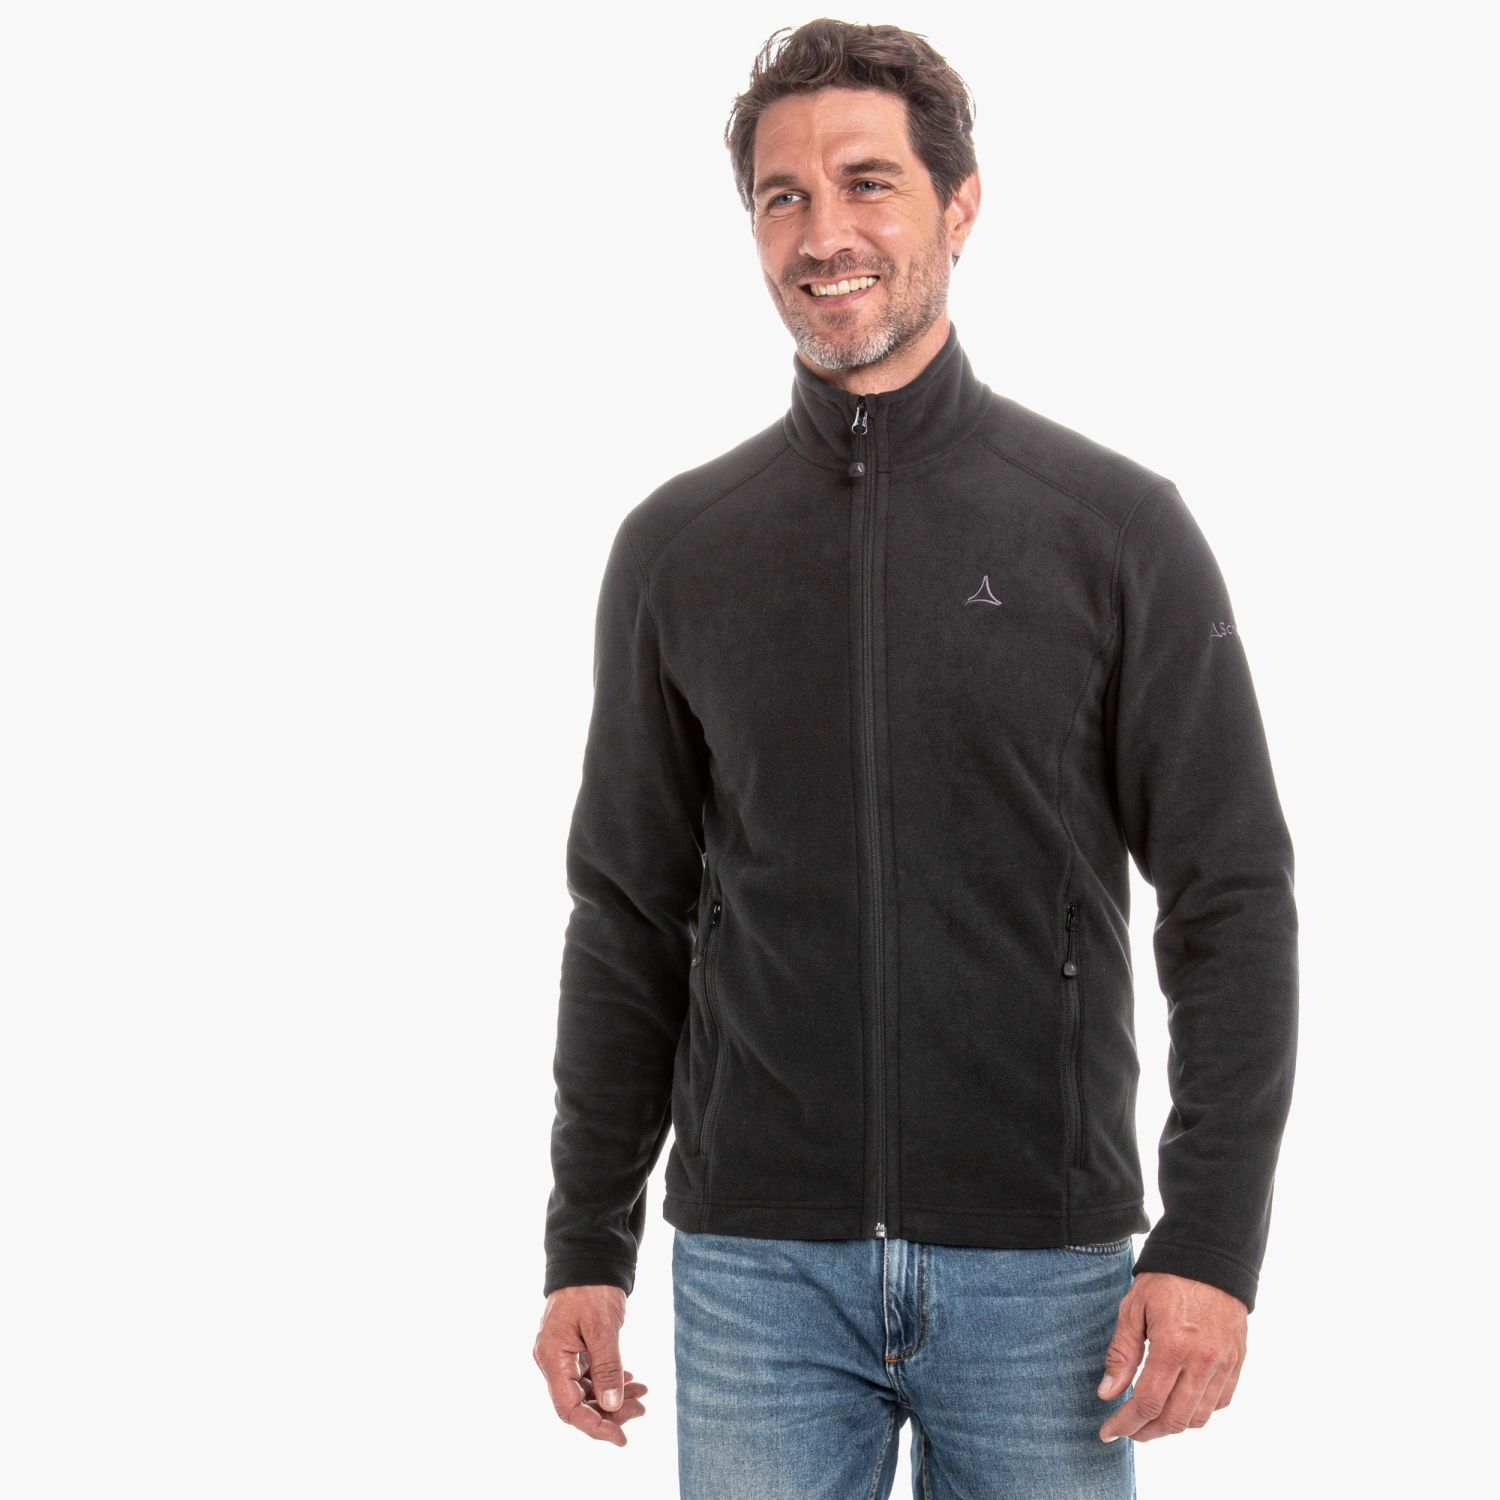 Fleece Jacket Cincinnati2